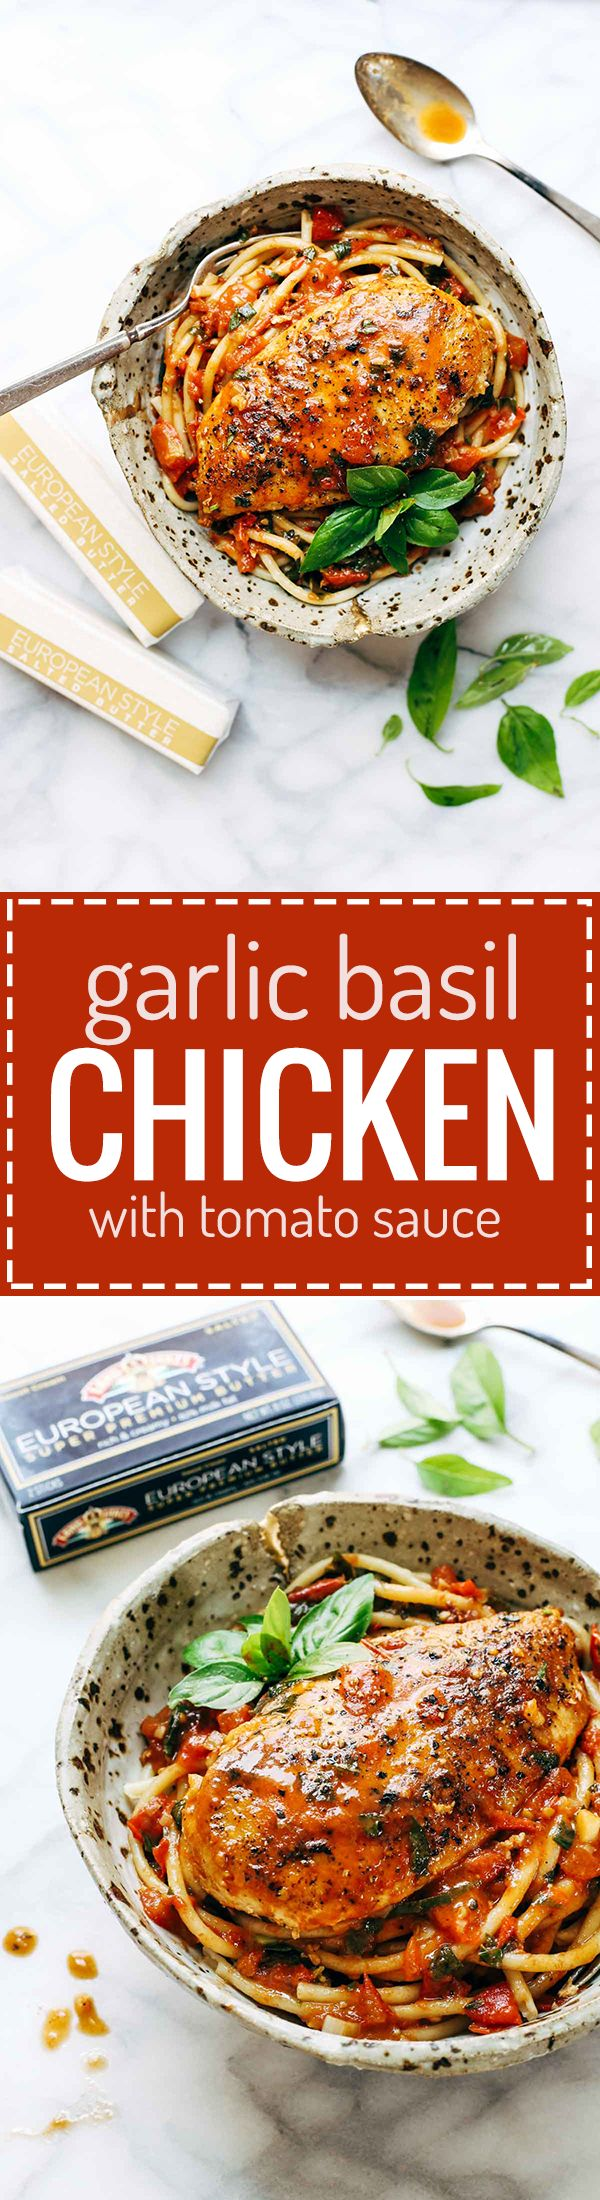 Garlic Basil Chicken with Tomato Butter Sauce - you won't believe that this real food recipe only requires 7 simple ingredients: chicken, pasta, garlic, olive oil, tomatoes, basil, butter. SO good! EuroStyleButter AD | pinchofyum.com.